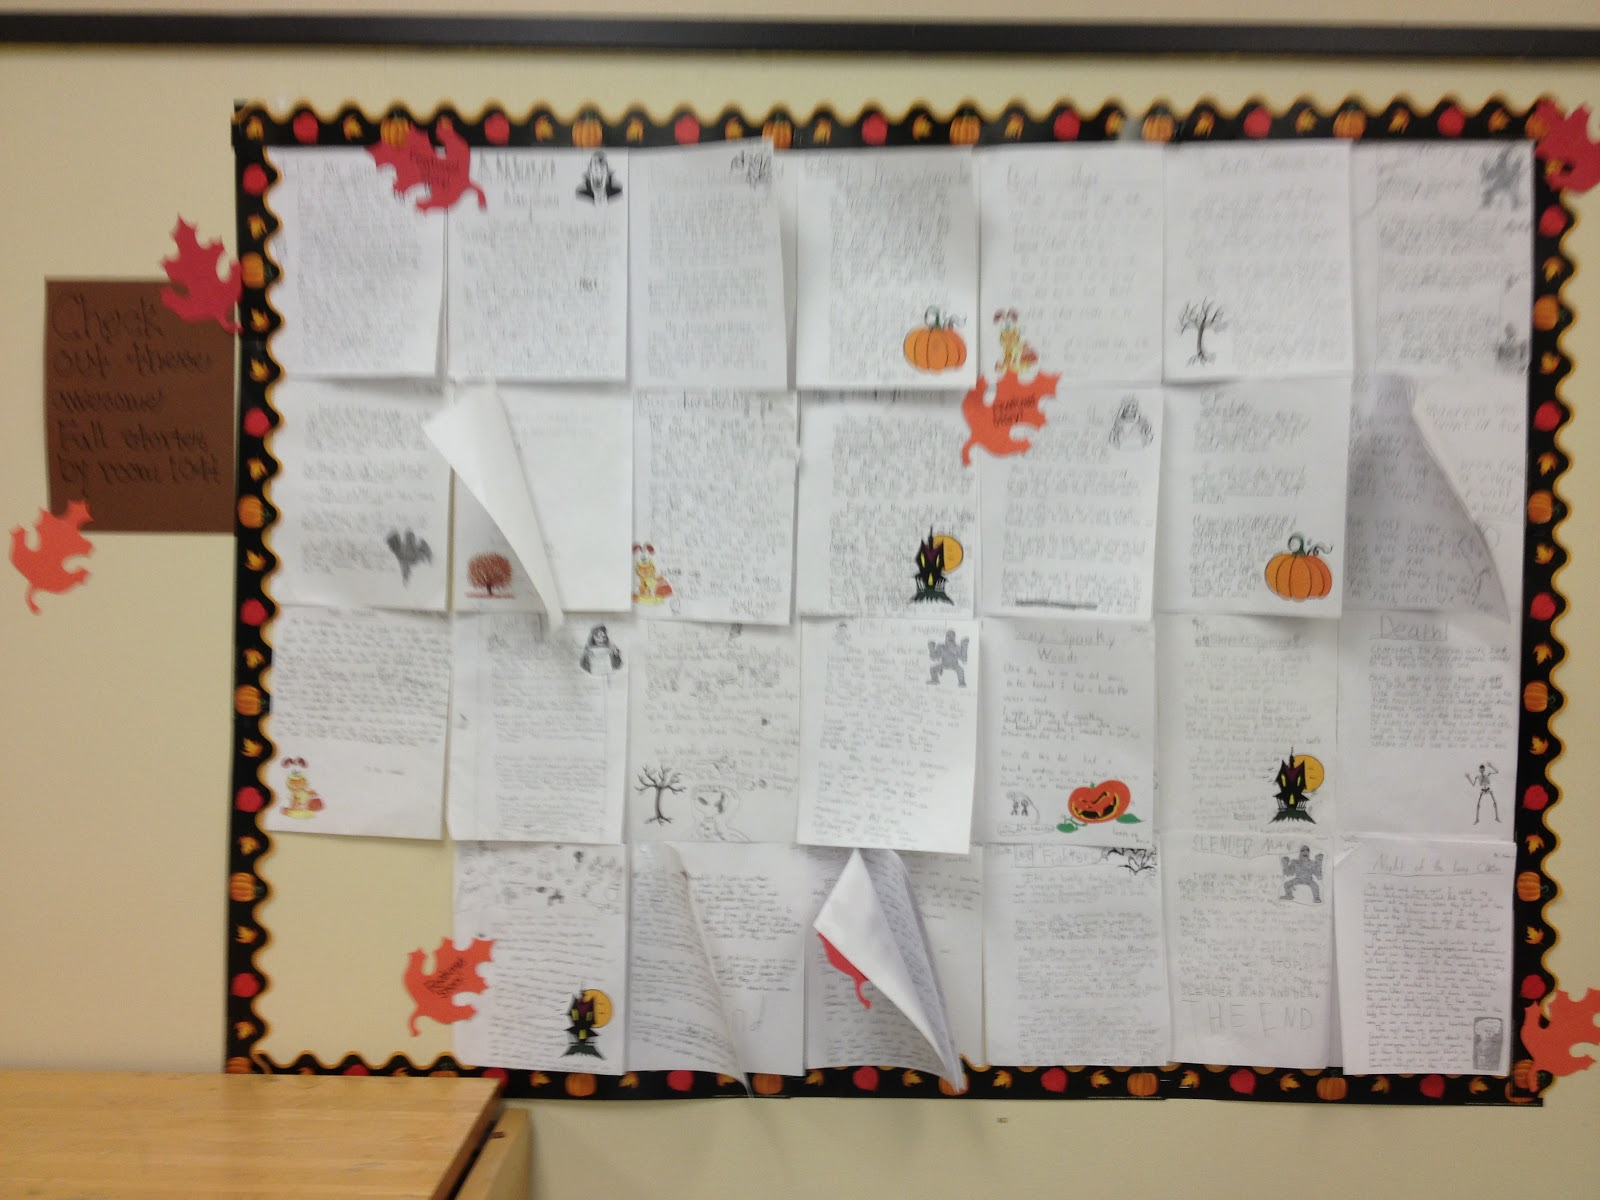 apples of your eye scary story writing unit teacherspayteachers com product scary story writing unit that is great for autumn here is a little sneak peek for my blog followers